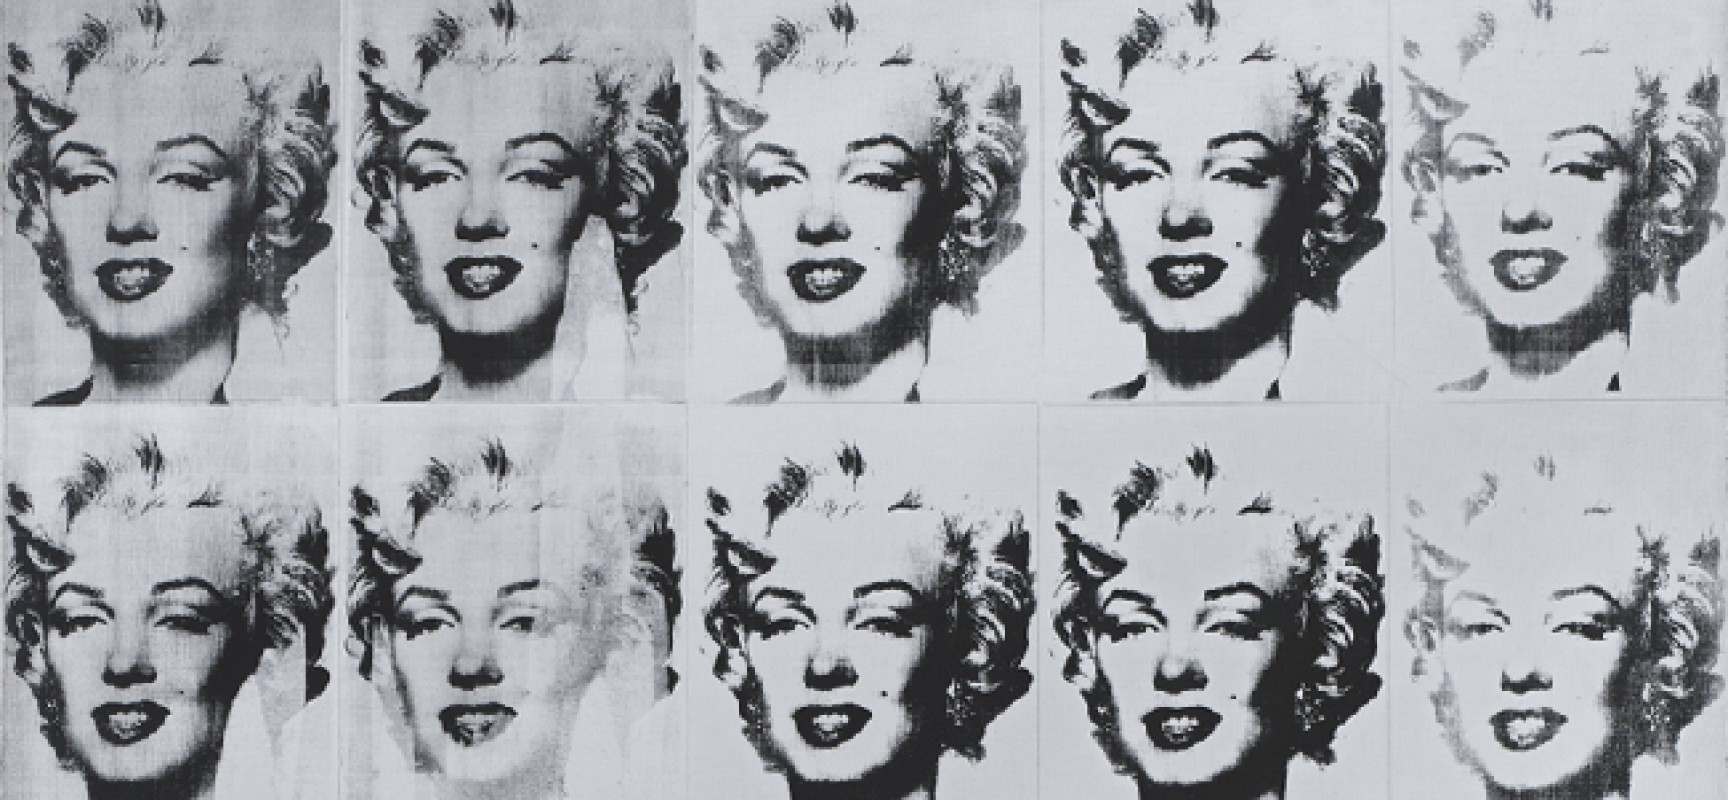 Cuadros De Andy Warhol Mitos Del Pop Catalunya Vanguardista